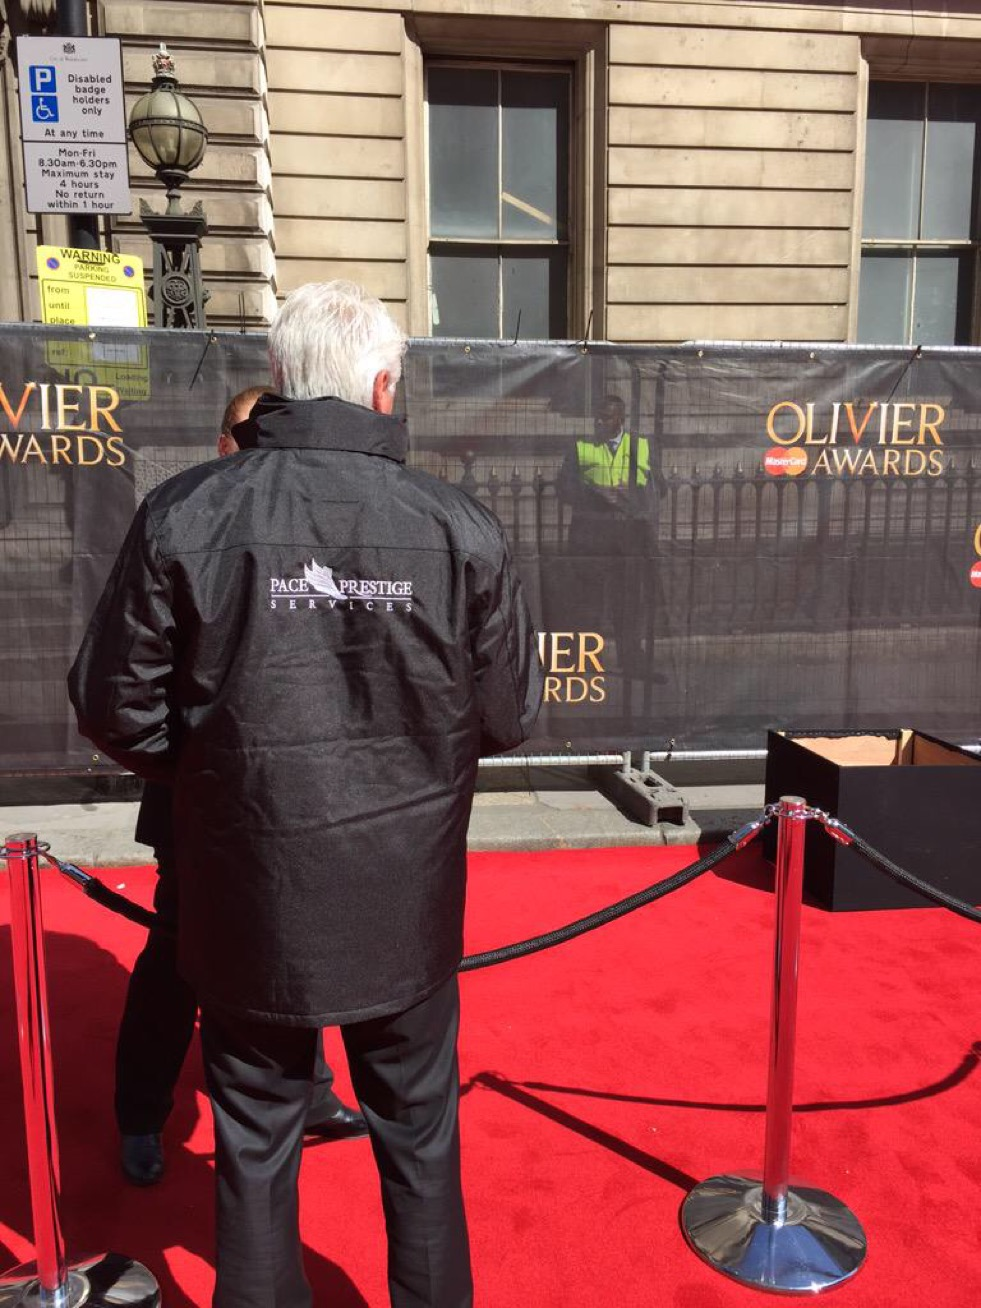 Oliviers Awards